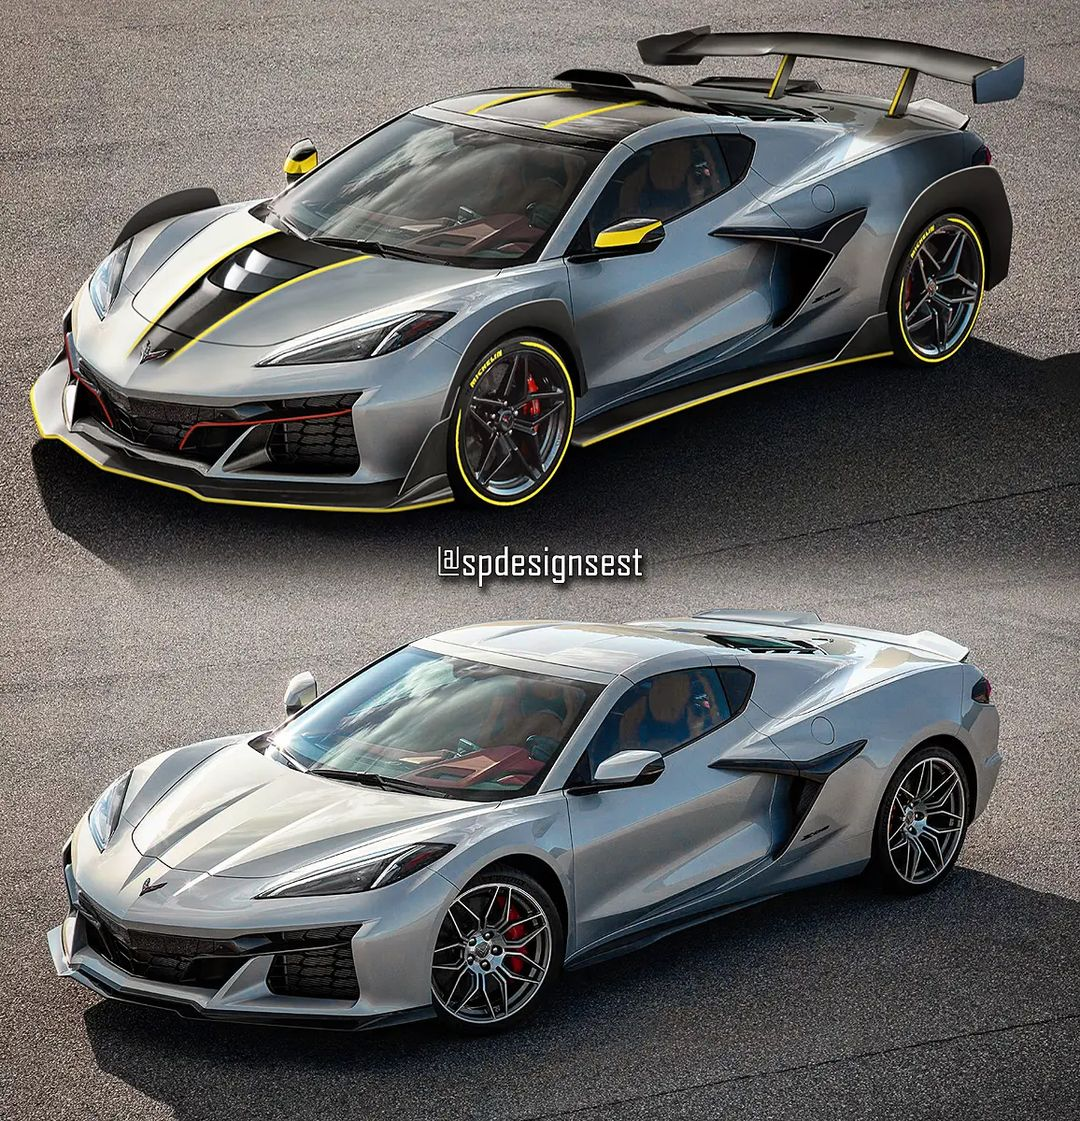 if-color-shifting-2023-corvette-z06s-aren't-enough,-maybe-a-widebody-does-the-trick